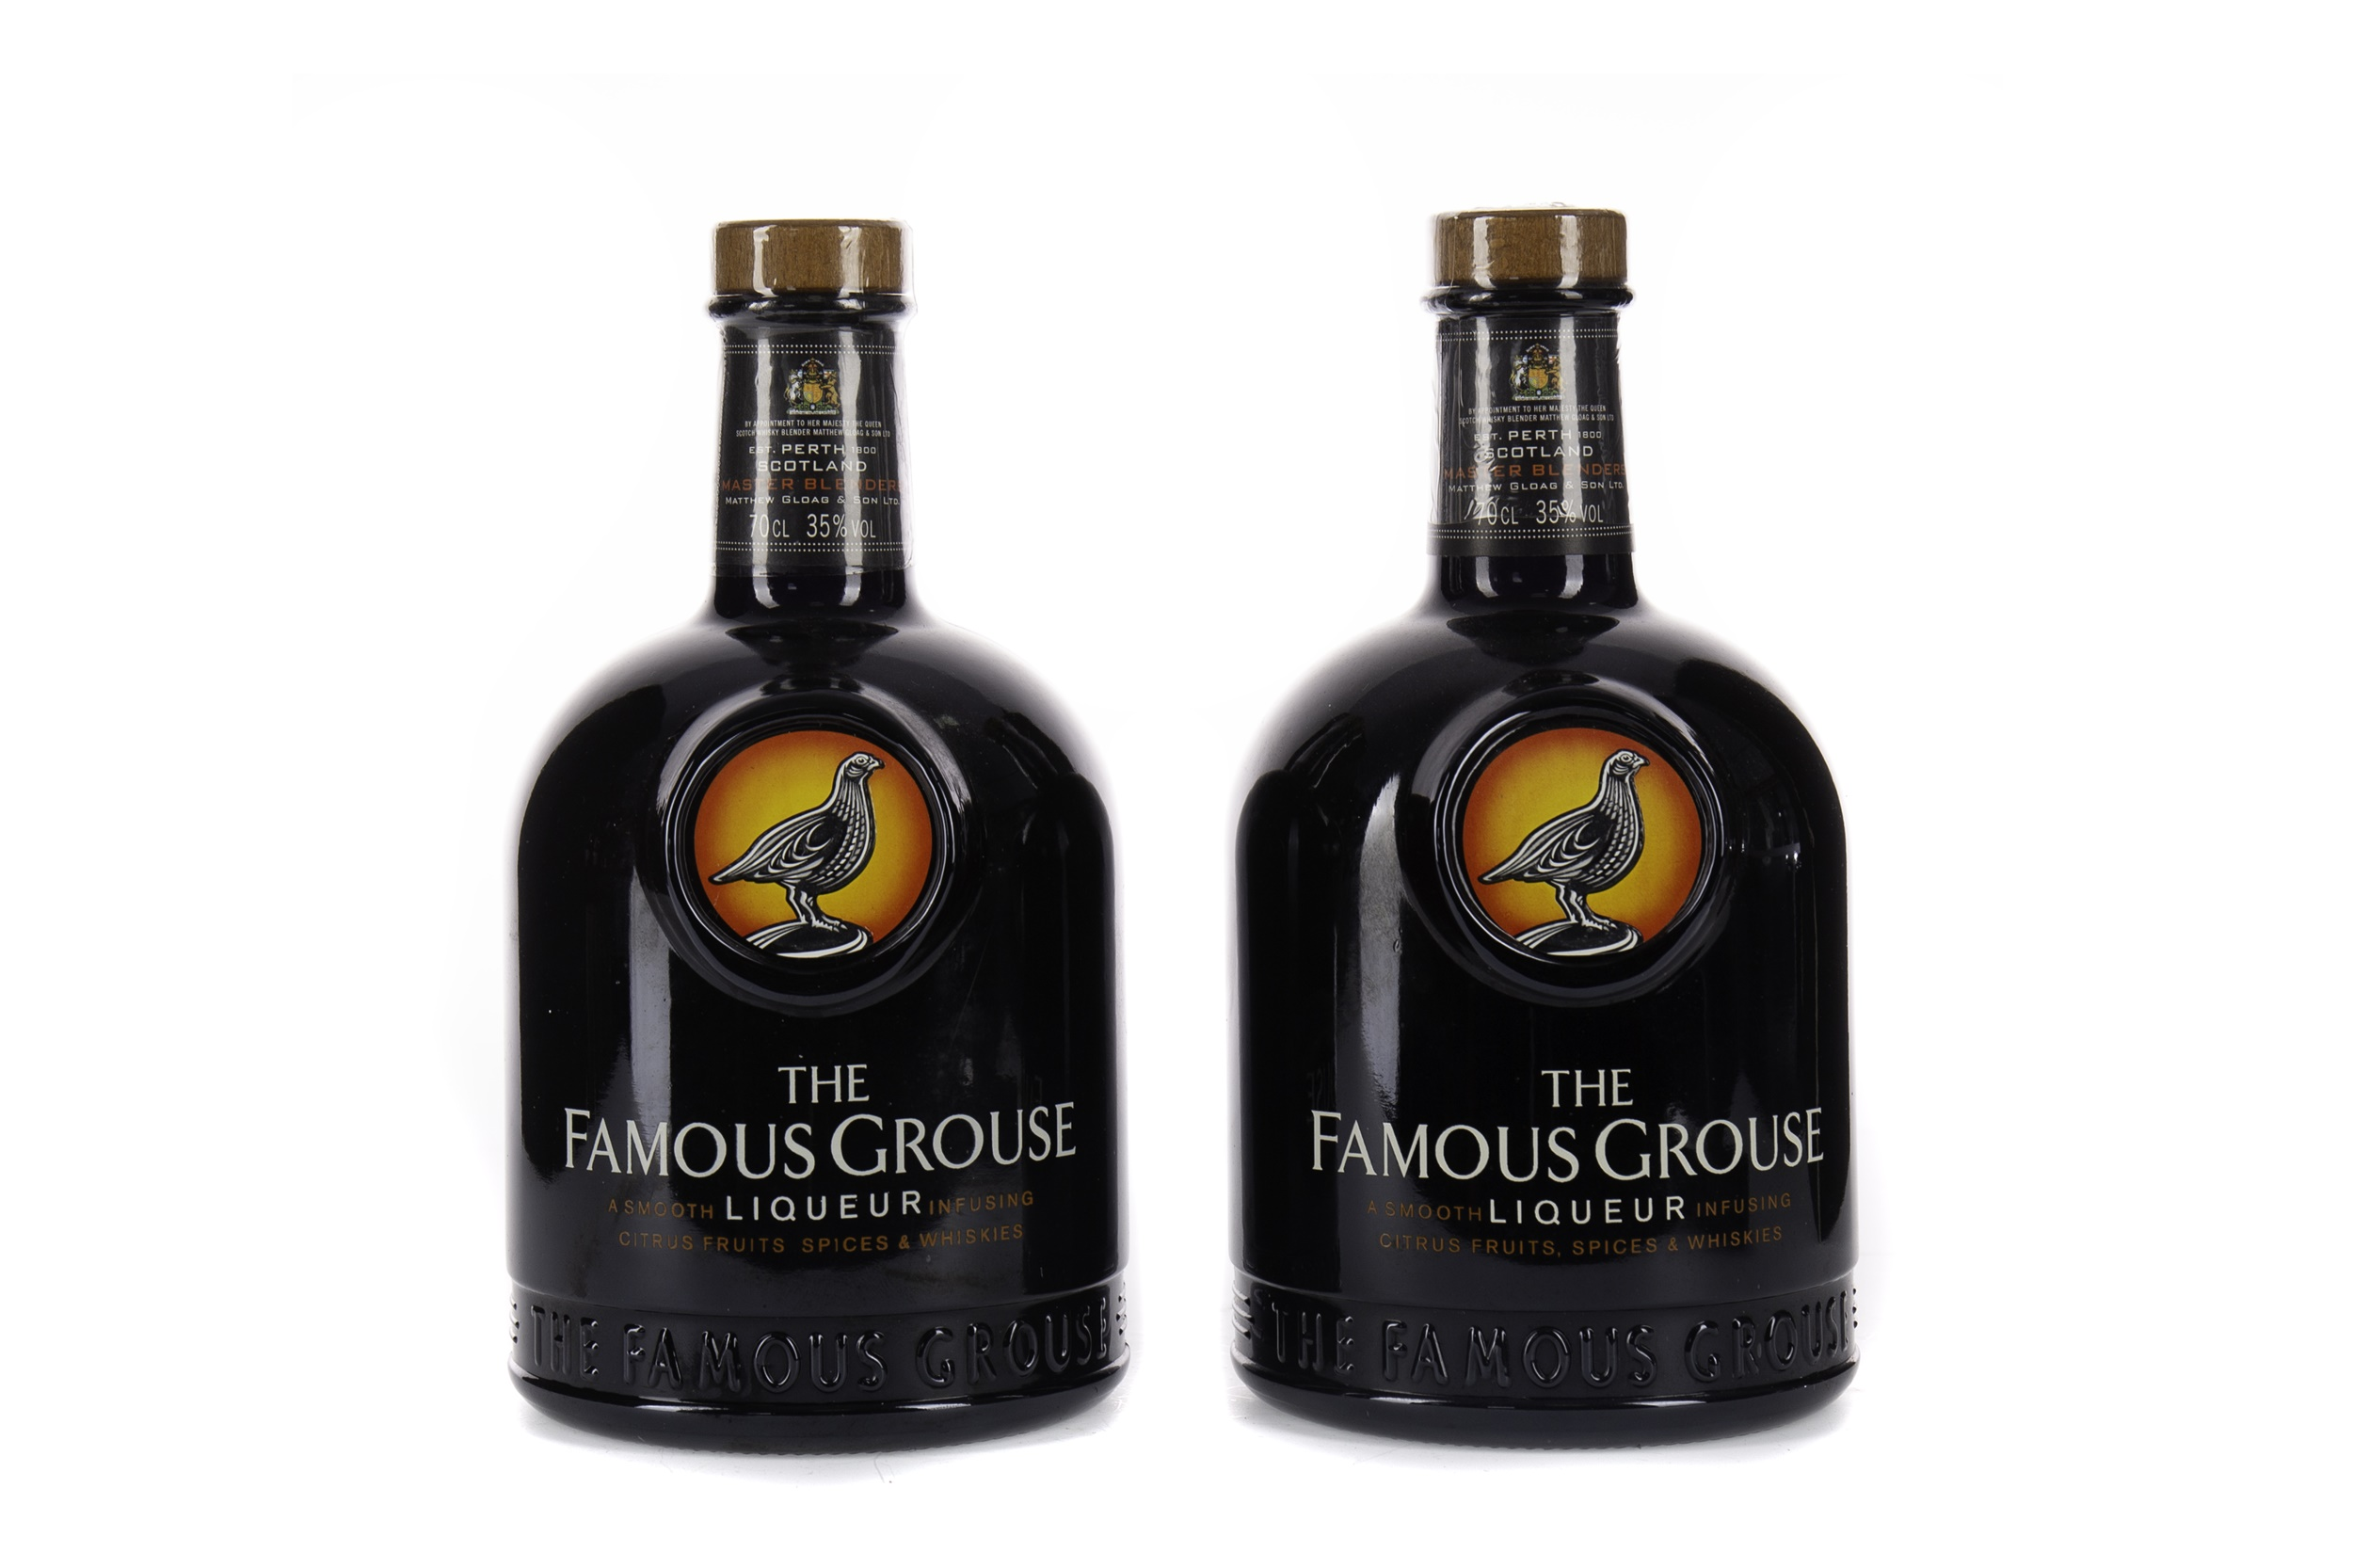 TWO BOTTLES OF THE FAMOUS GROUSE LIQUEUR